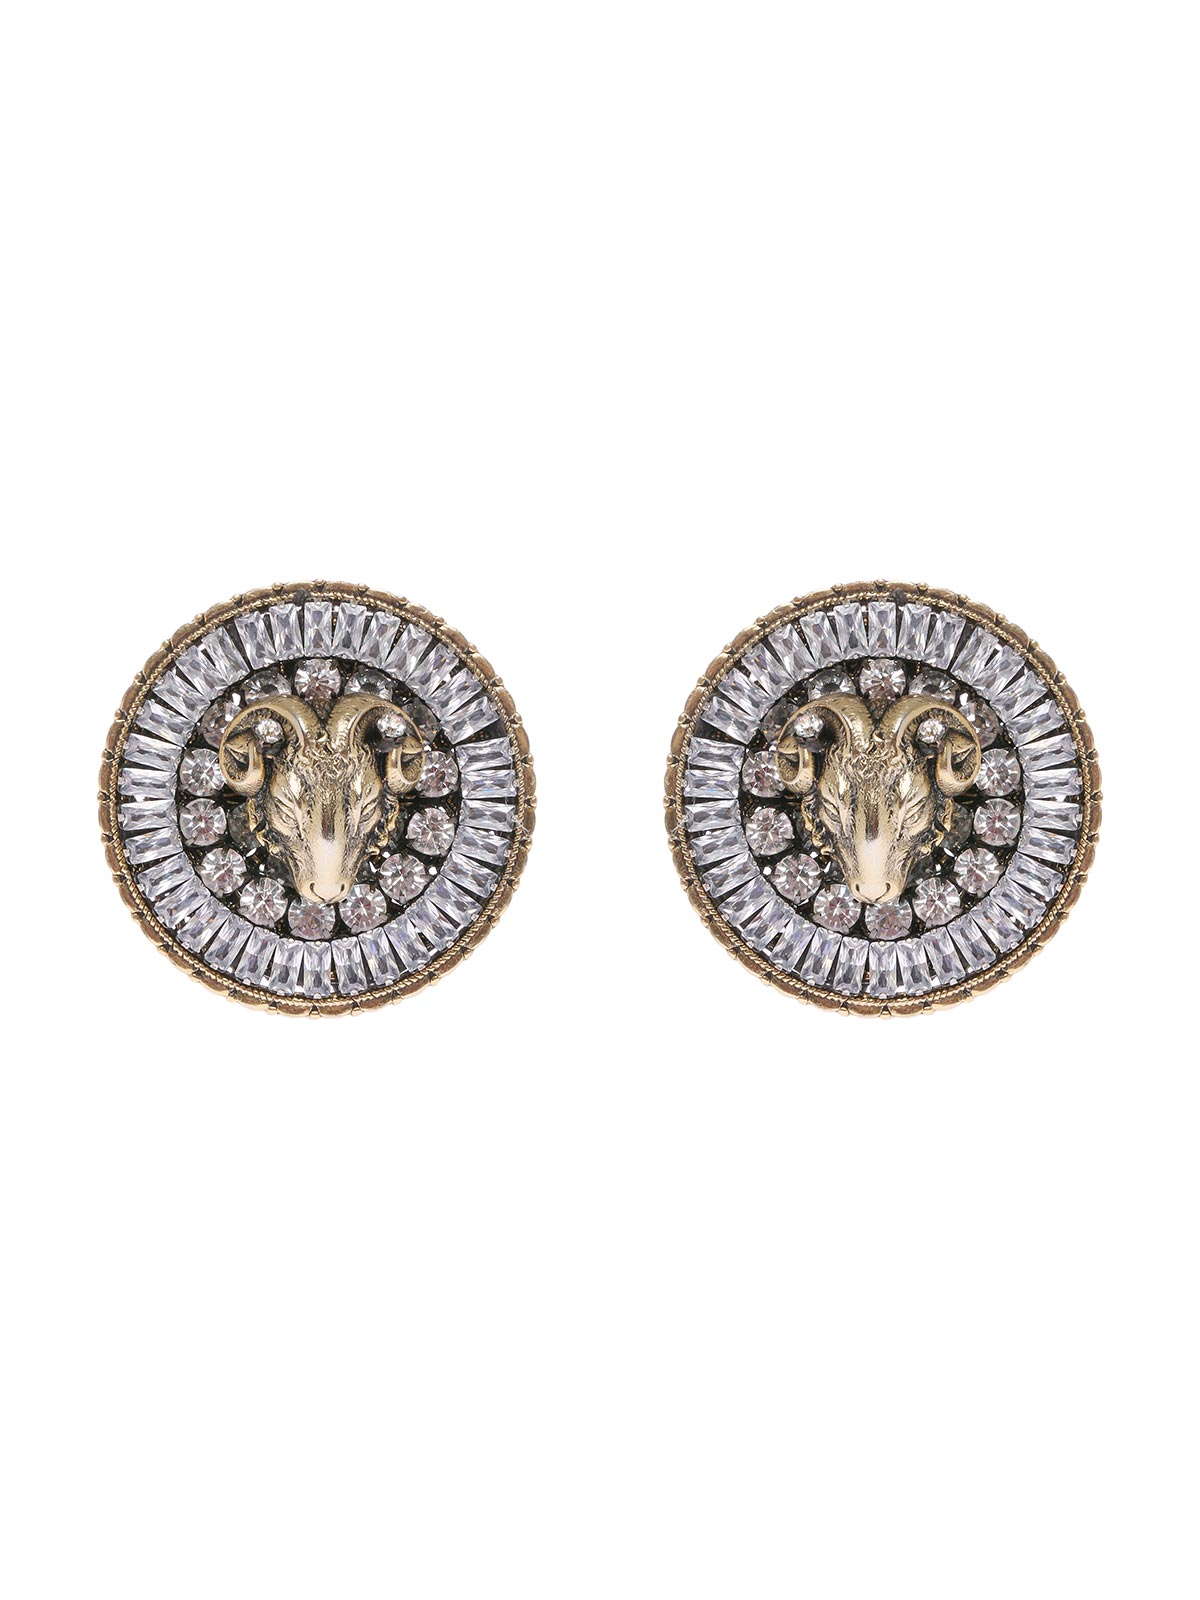 Aries earrings with crystals